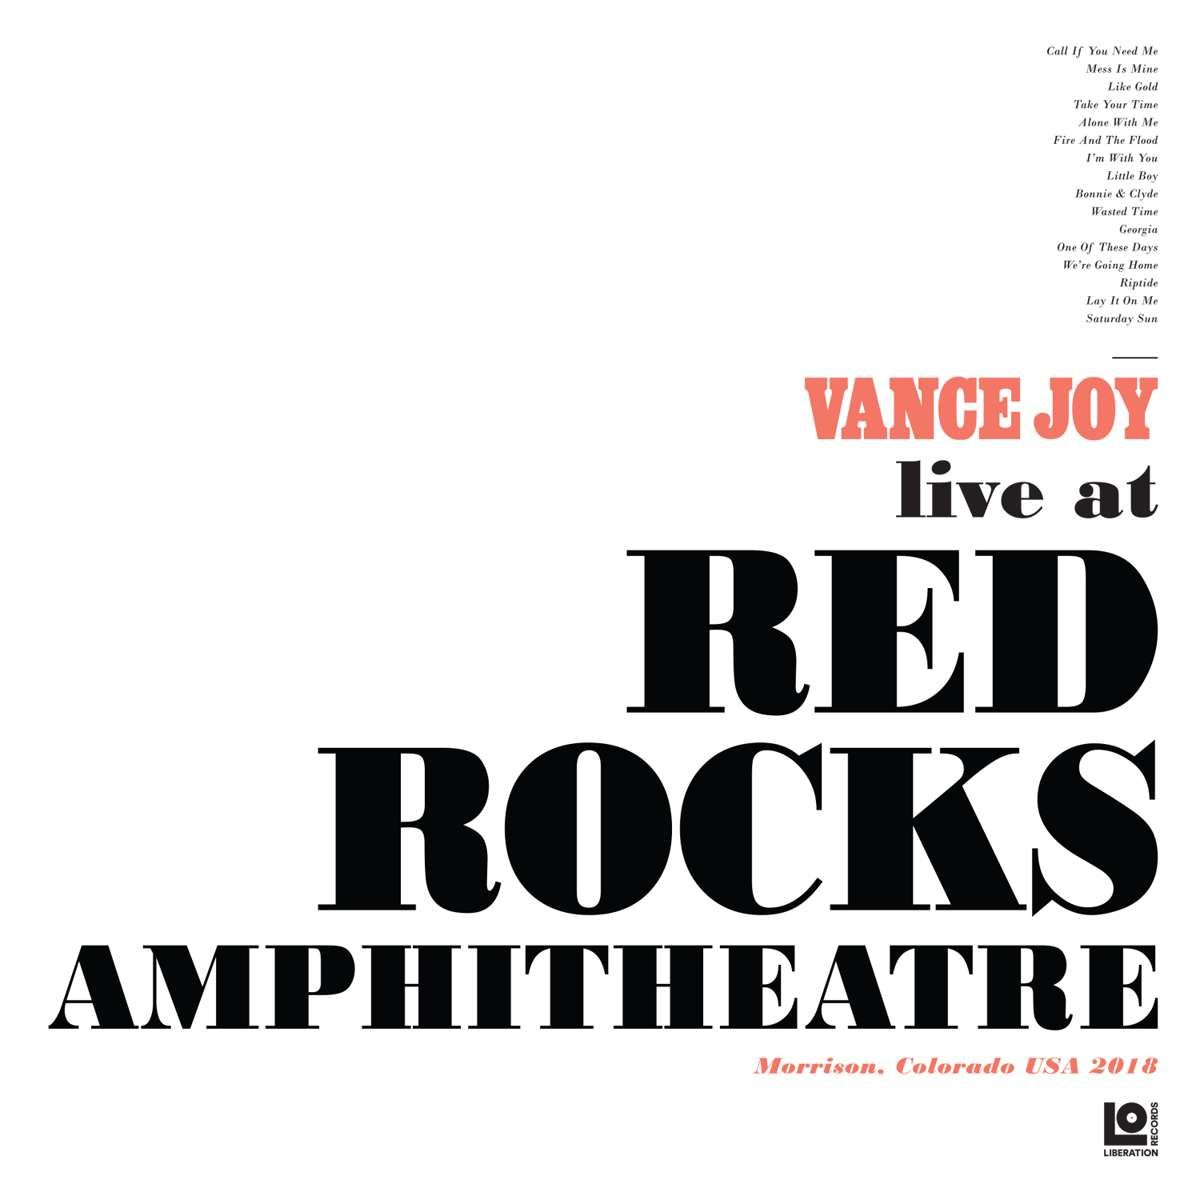 Vance Joy - Live at Red Rocks Amphitheatre (2LP - Limited Edition Rose Vinyl) - Liberation Records